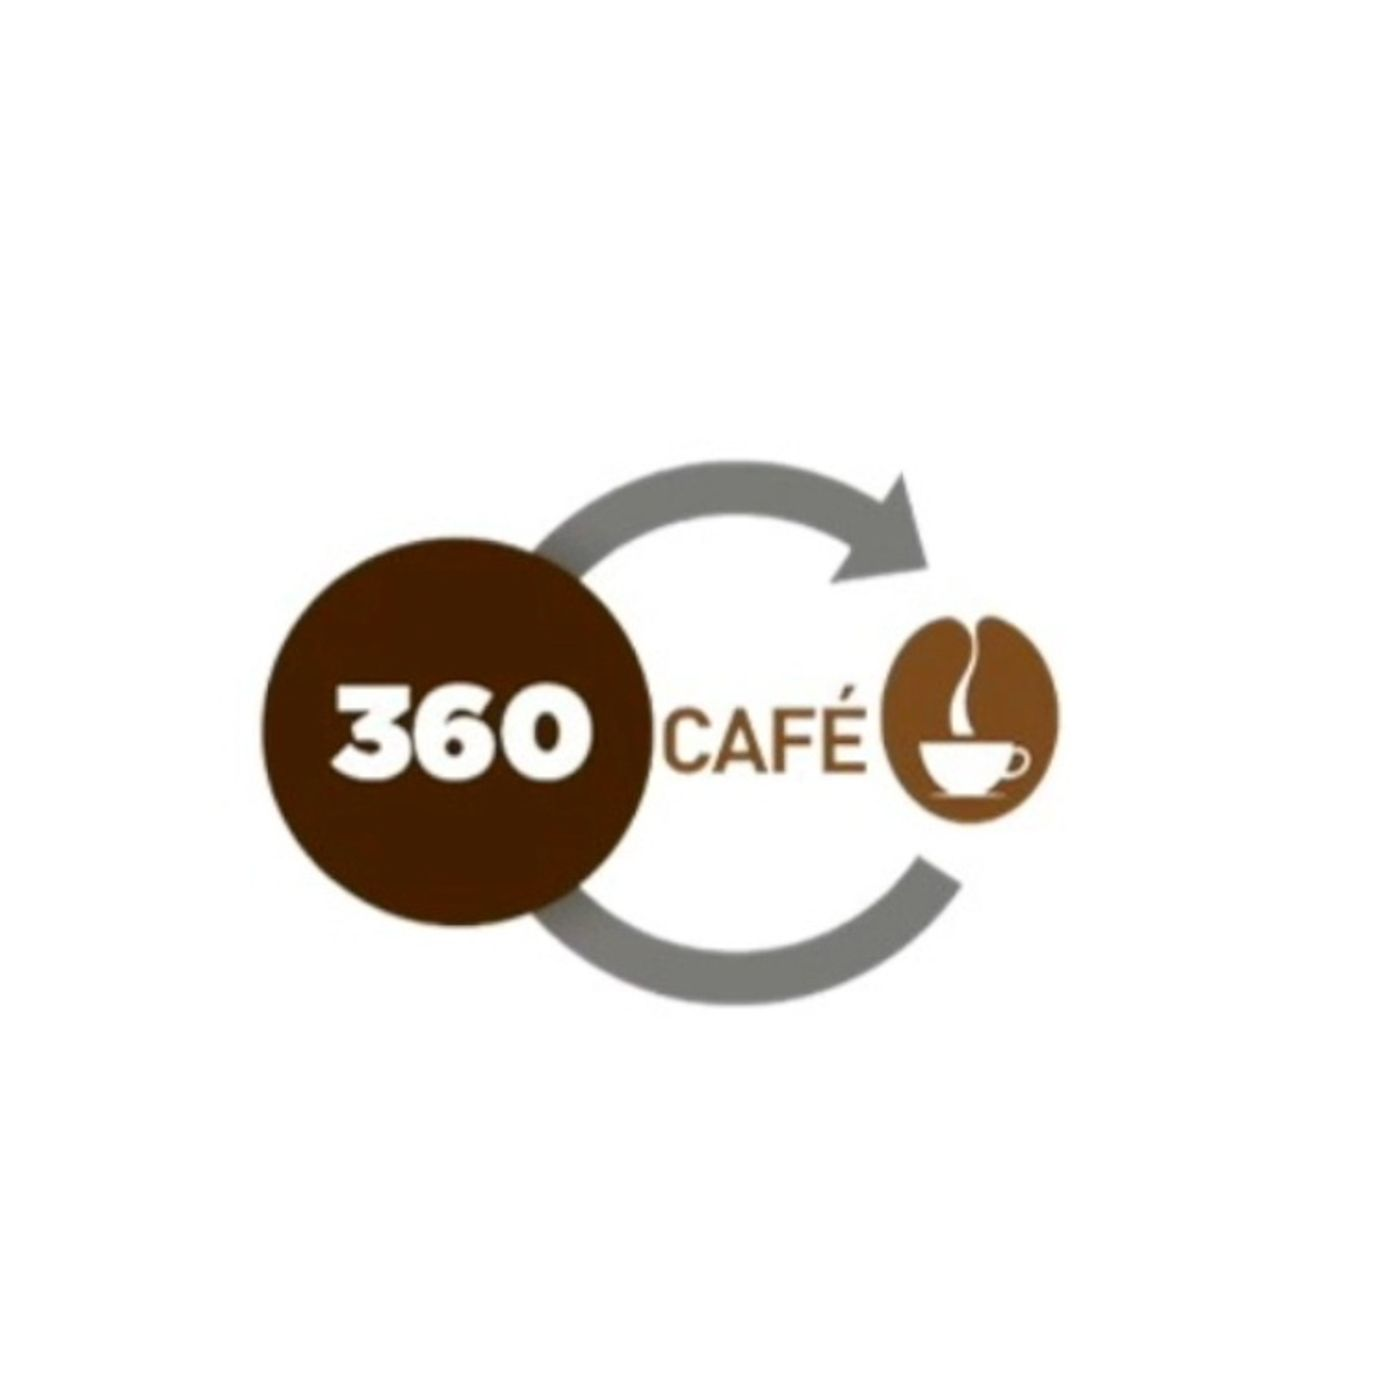 360 Cafe - Action Learning - parte 4